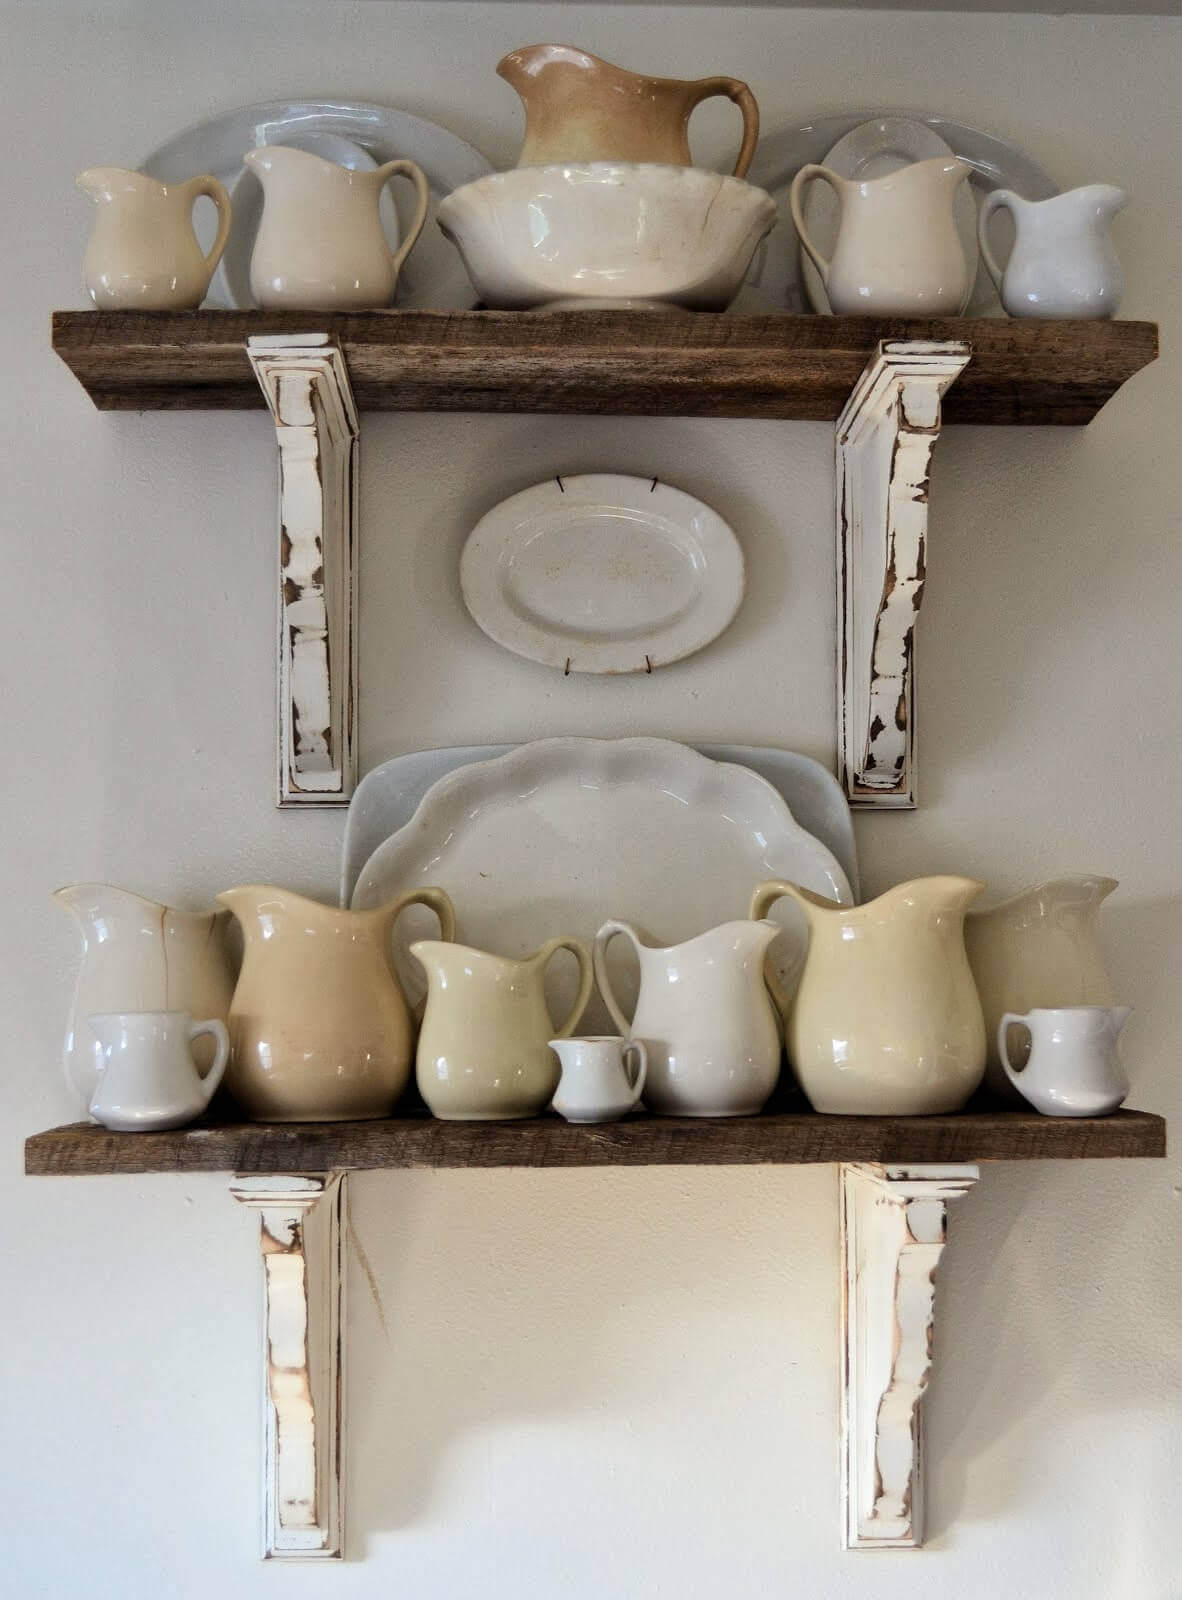 Architectural Salvage Shelves with Antique Ironstone